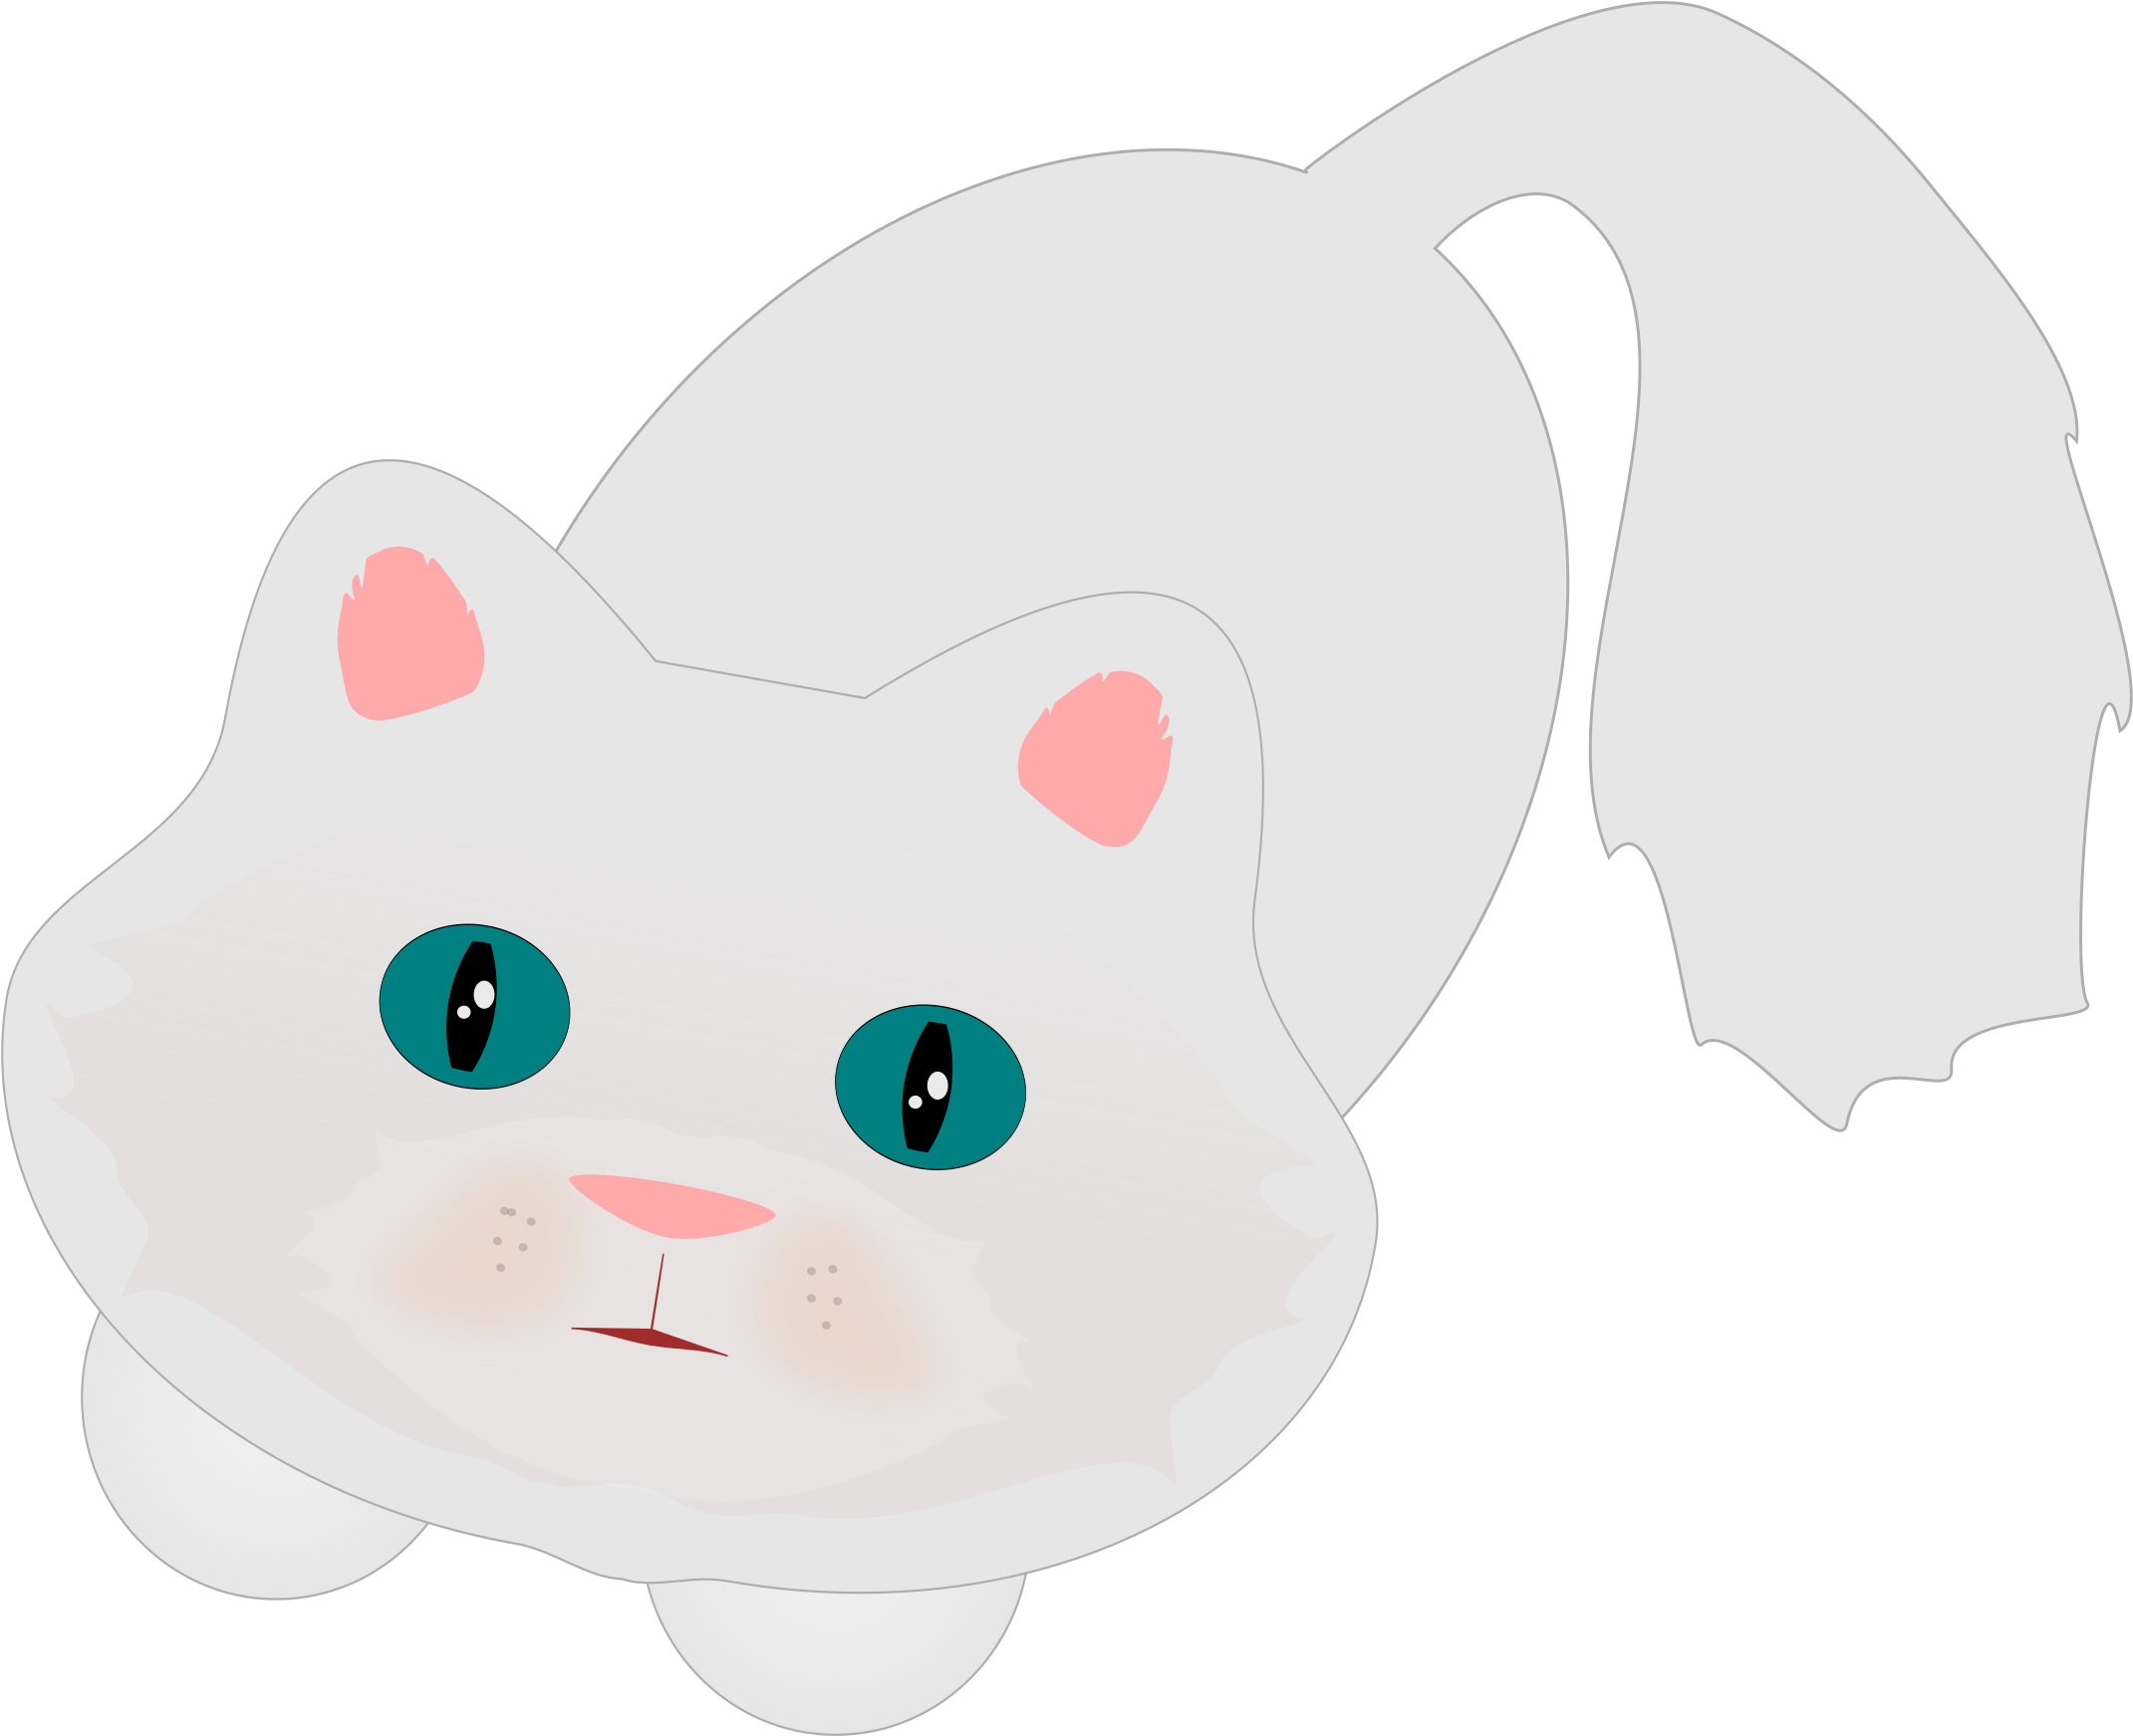 This Free Icons Png Design Of Cute Fluffy Cat Clipart Large Size Png Image Pikpng